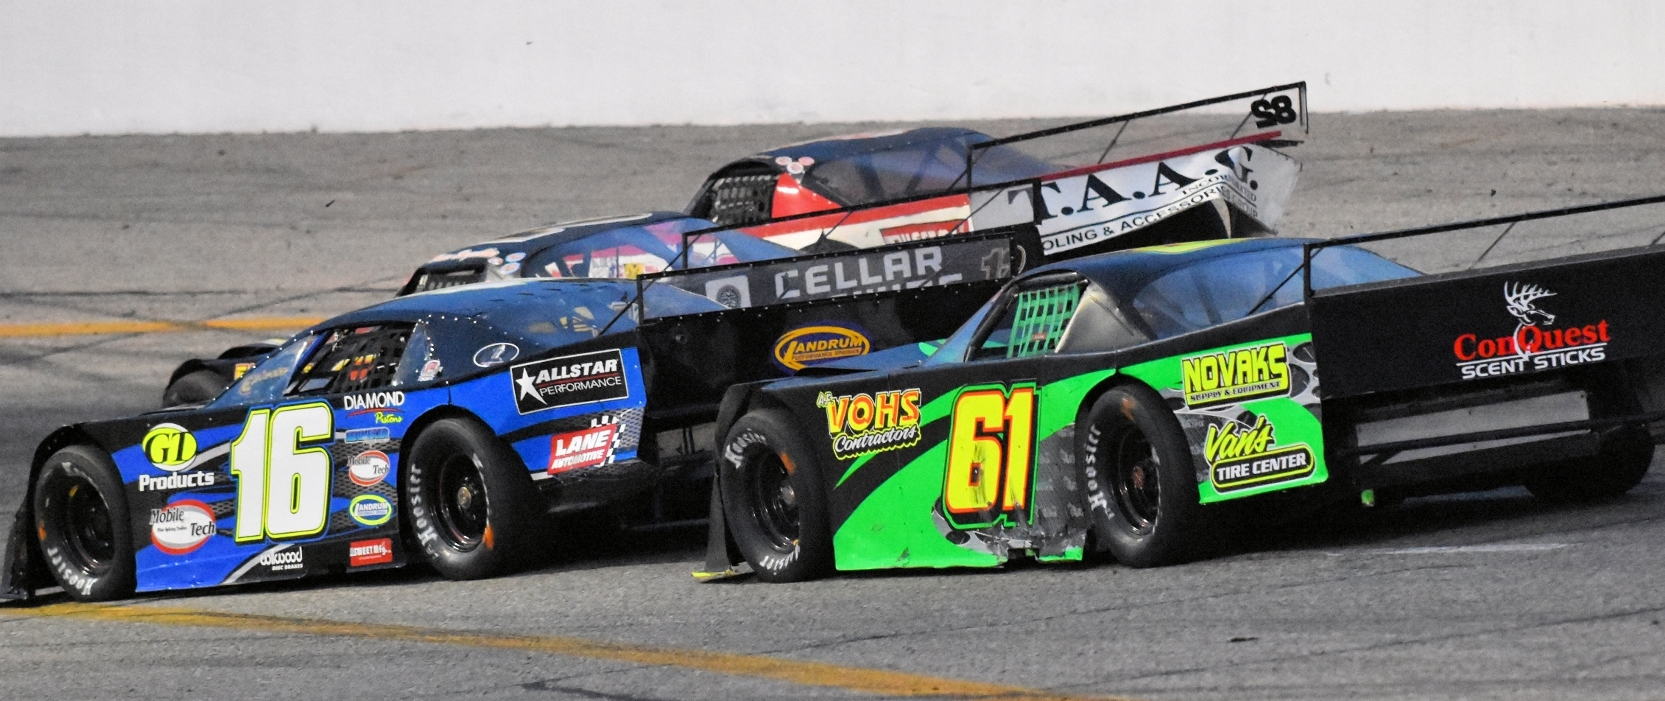 KALAMAZOO KLASH XXIX - OUTLAW SUPER LATE MODELS $10,000 to win with TEMPLATE LATE MODELS $5,000 to win